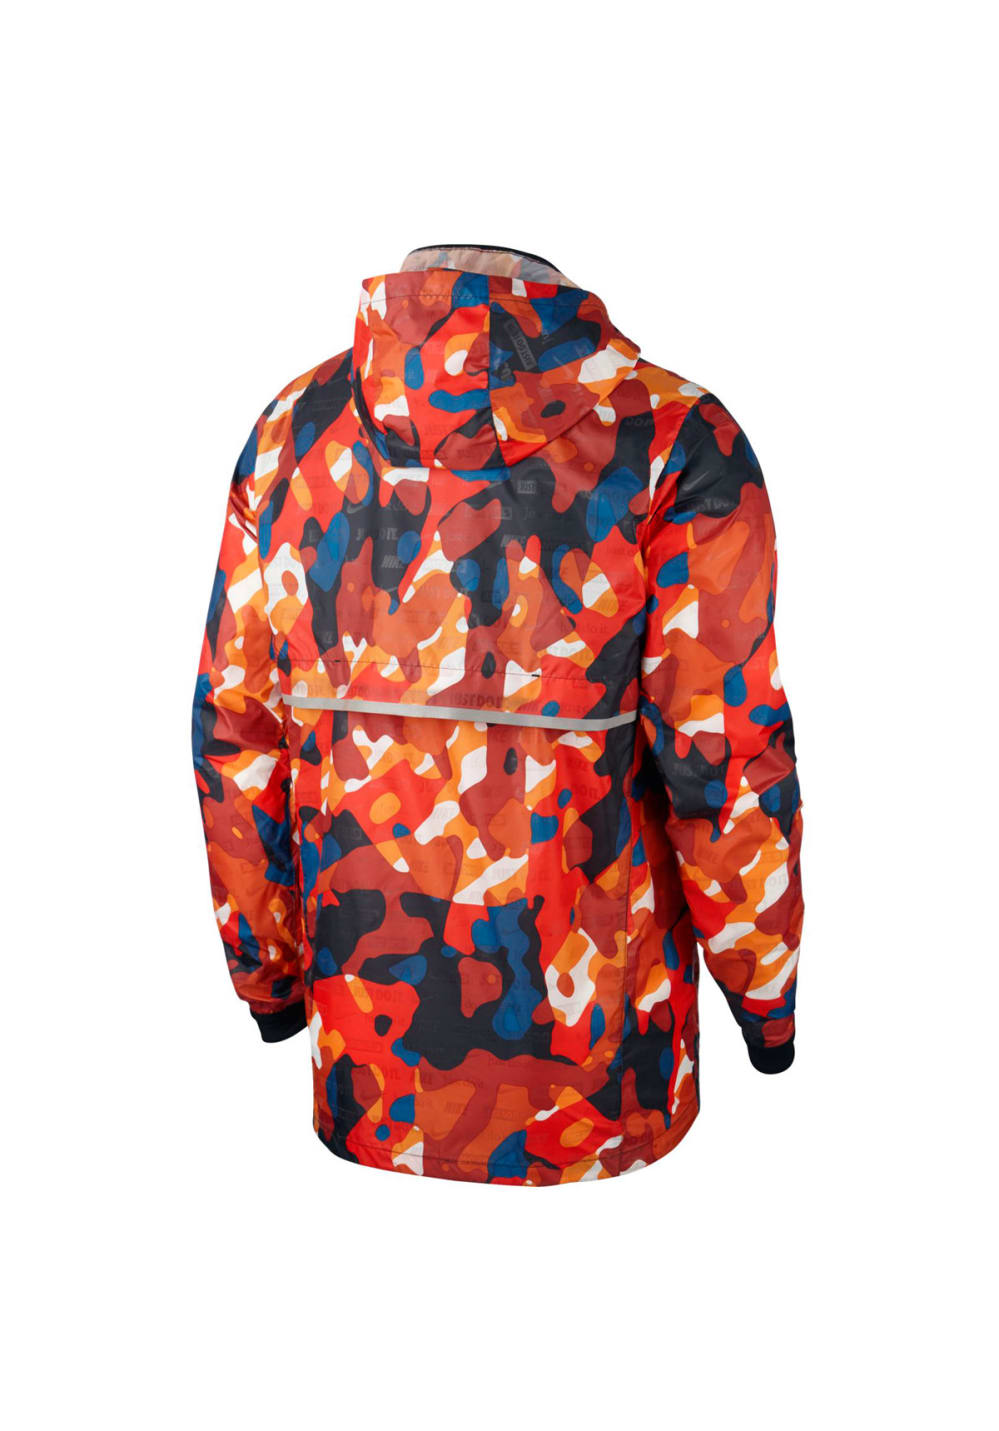 093dfacc02b34 Nike Shield Ghost Flash Running Jacket - Laufjacken für Herren - Rot ...